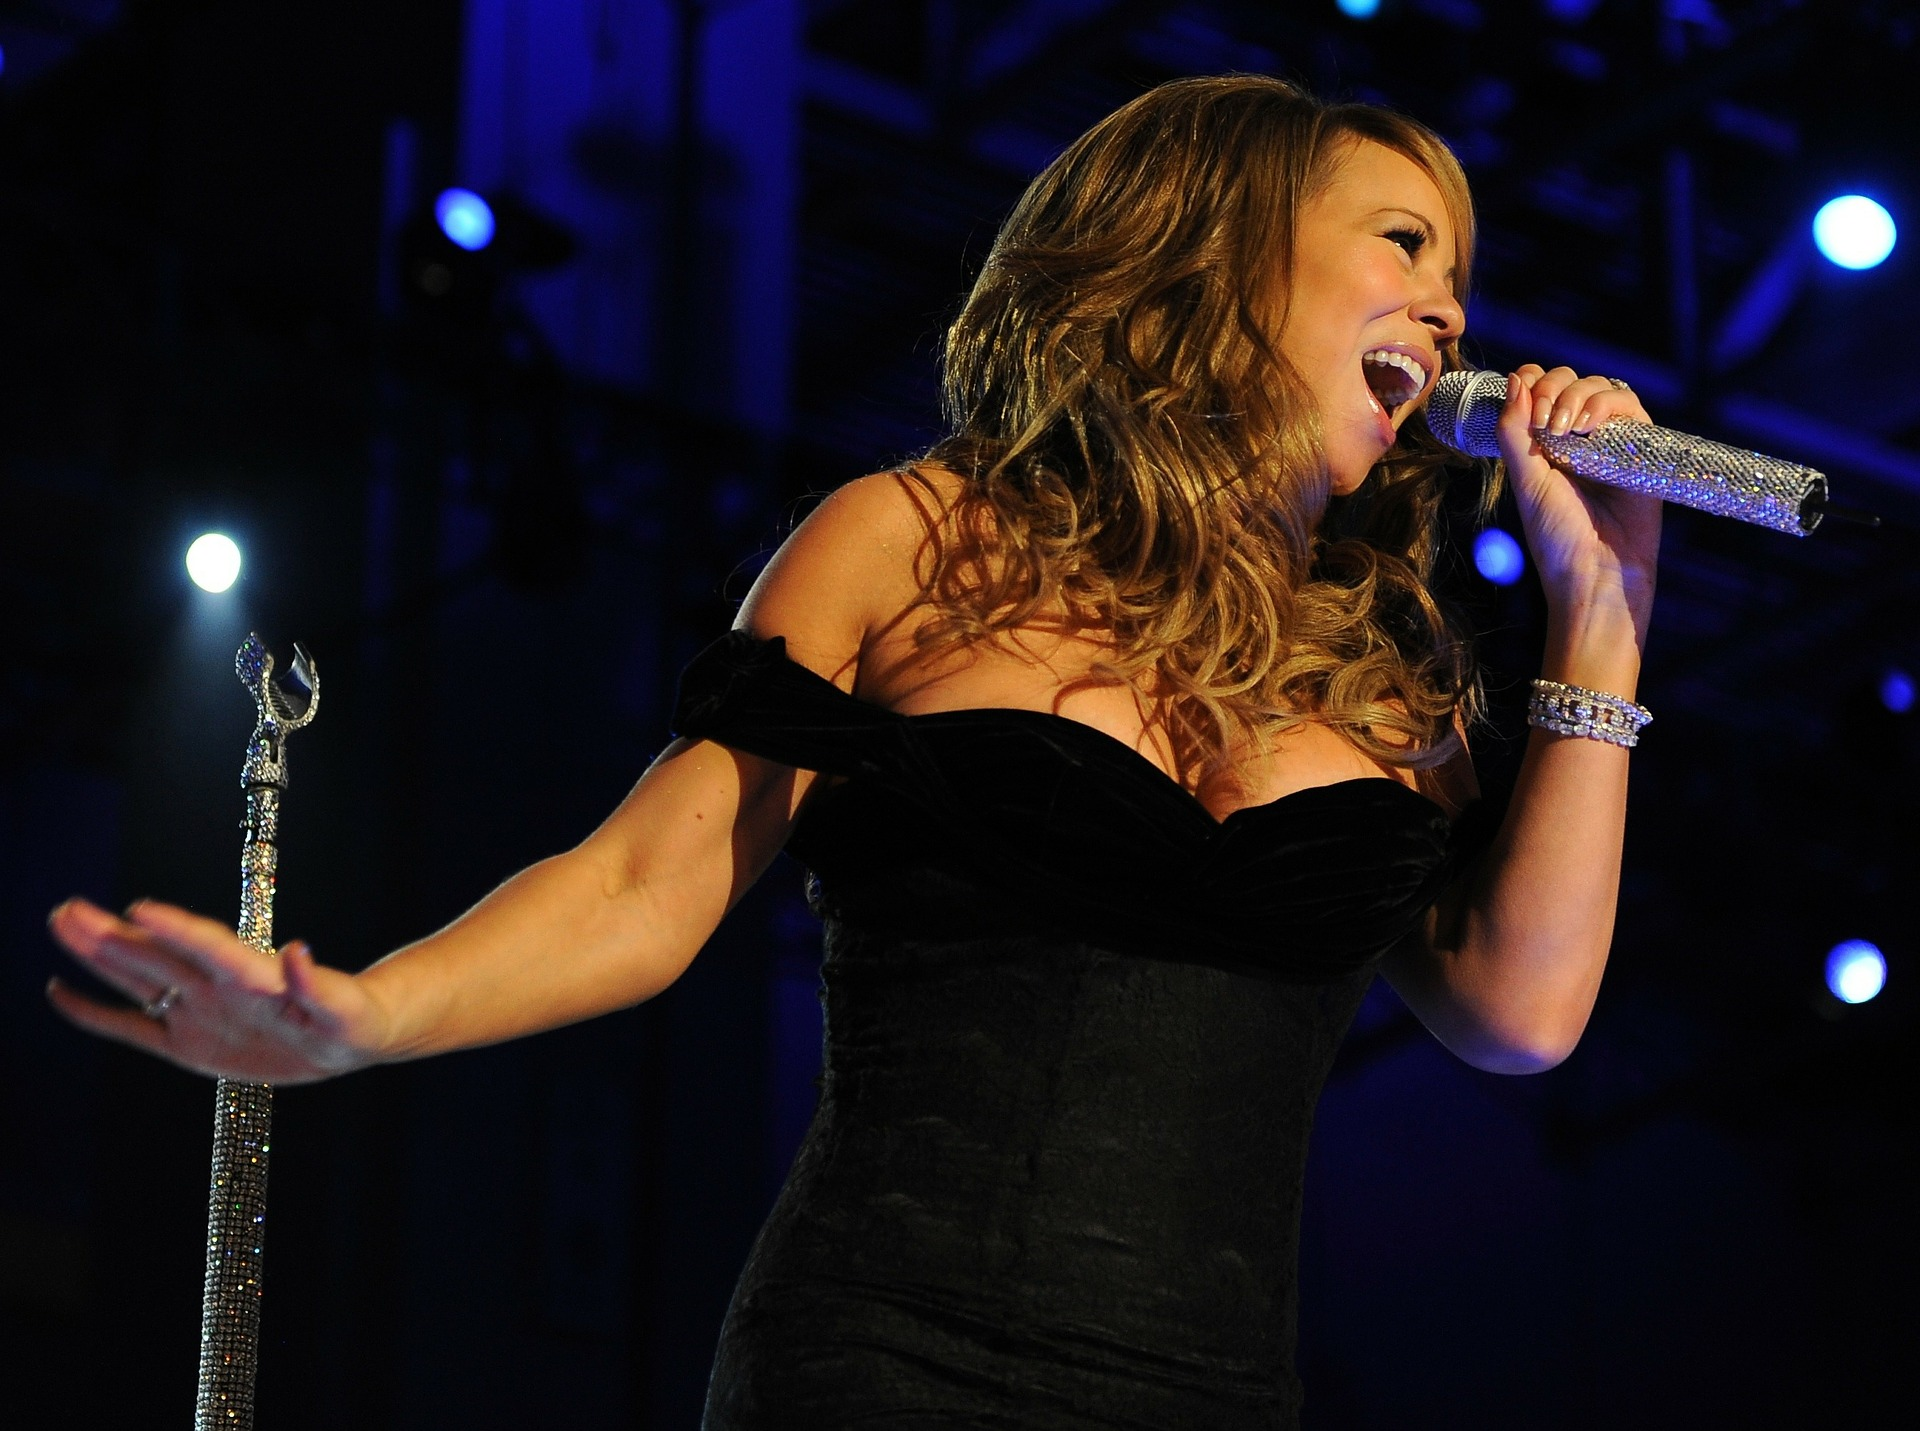 Mariah Carey sings live on stage